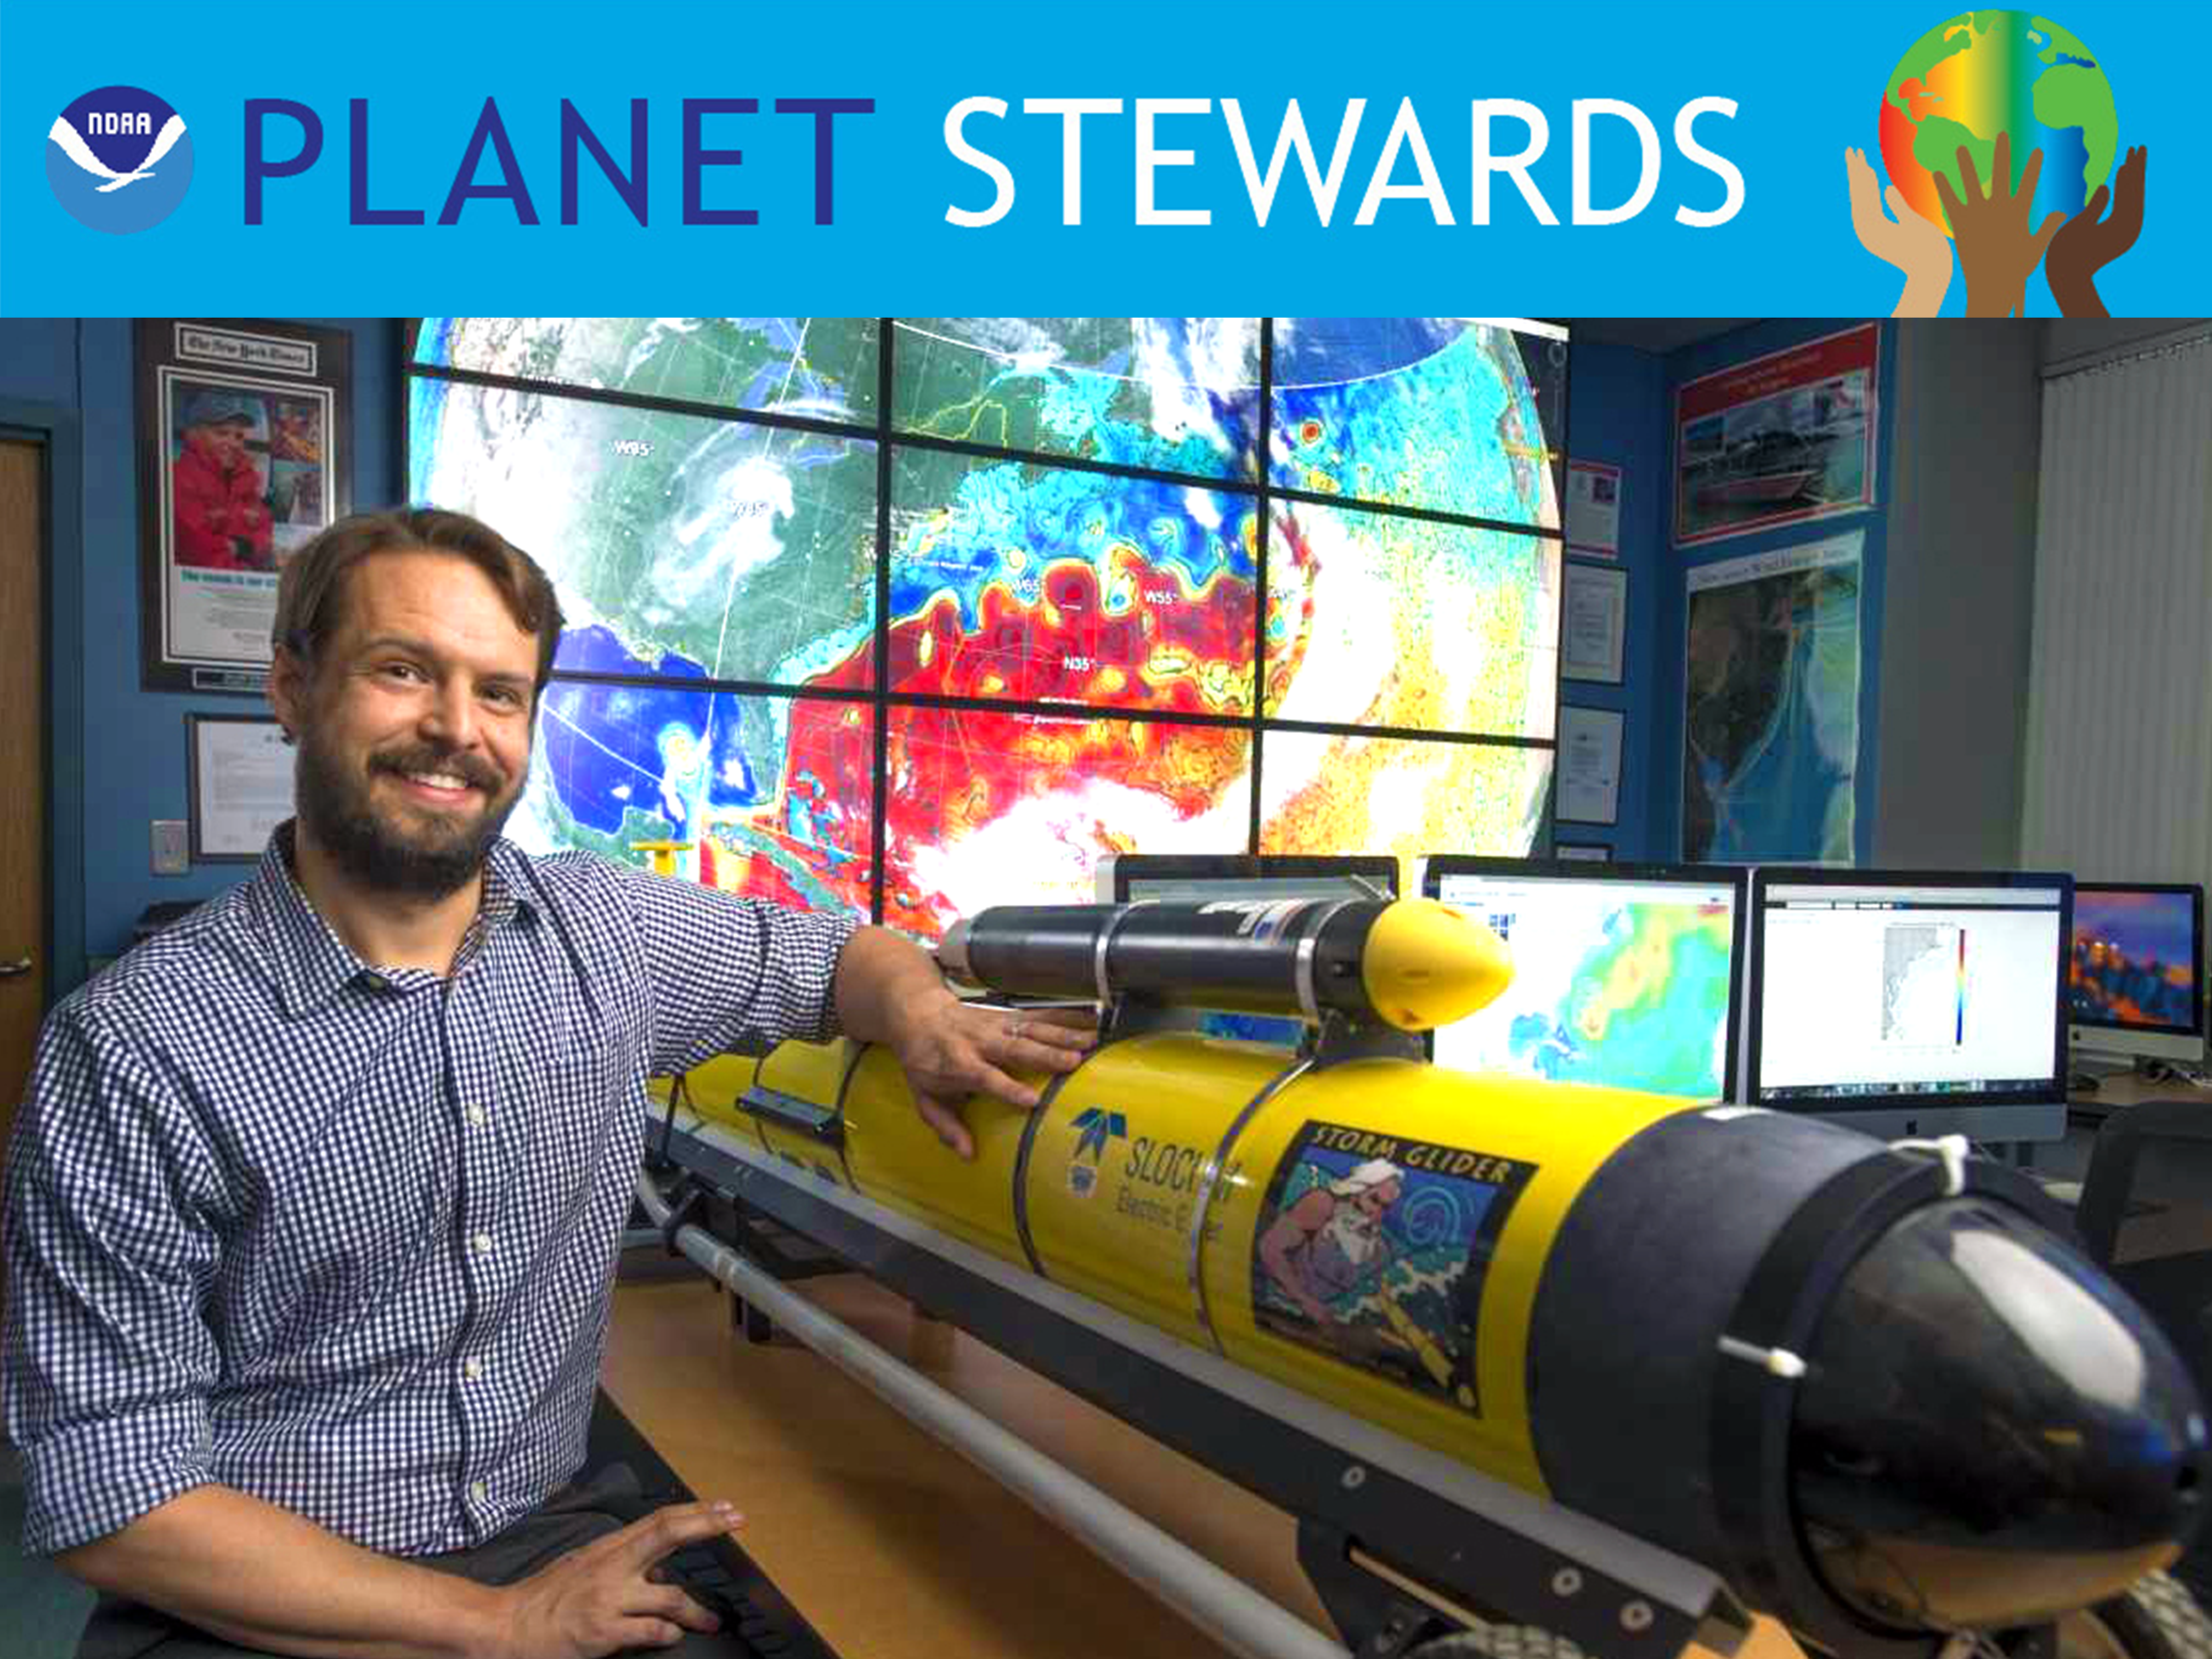 Travis Miles NOAA Planet Stewards